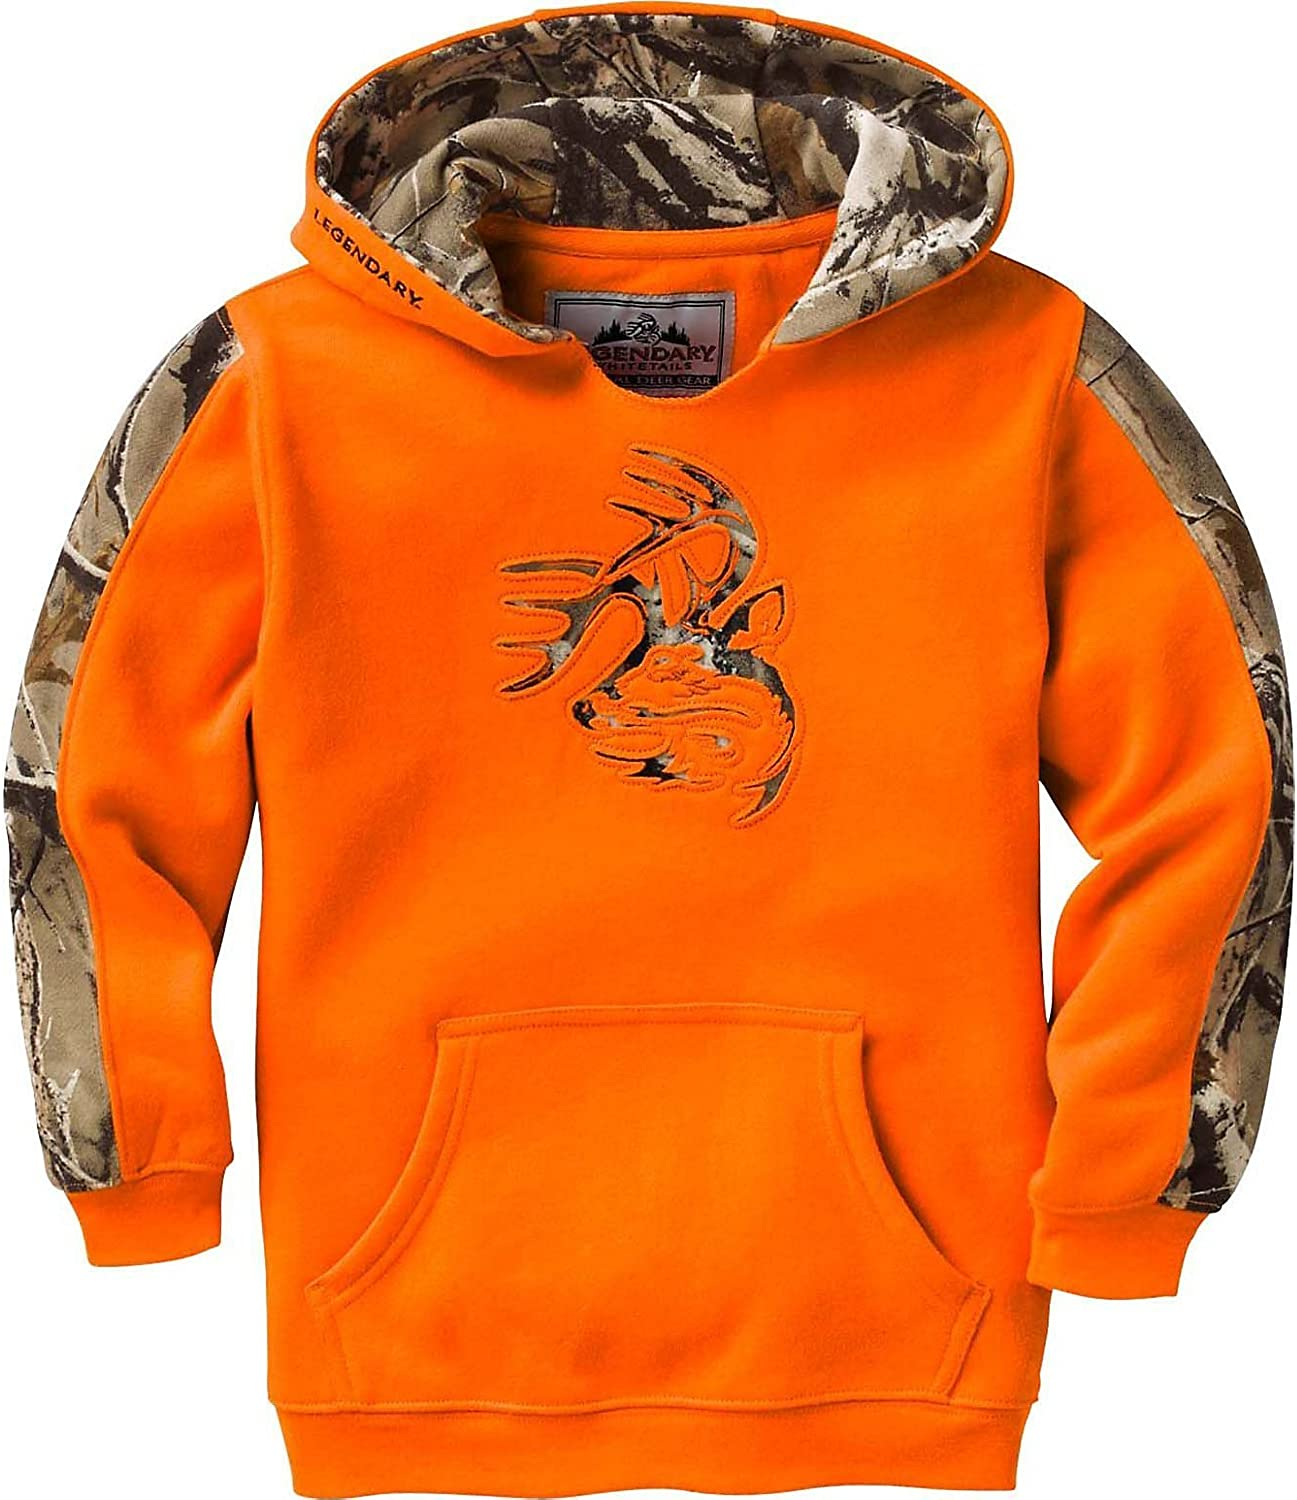 Legendary Whitetails Youth Camo Outfitter Hoodie: Clothing